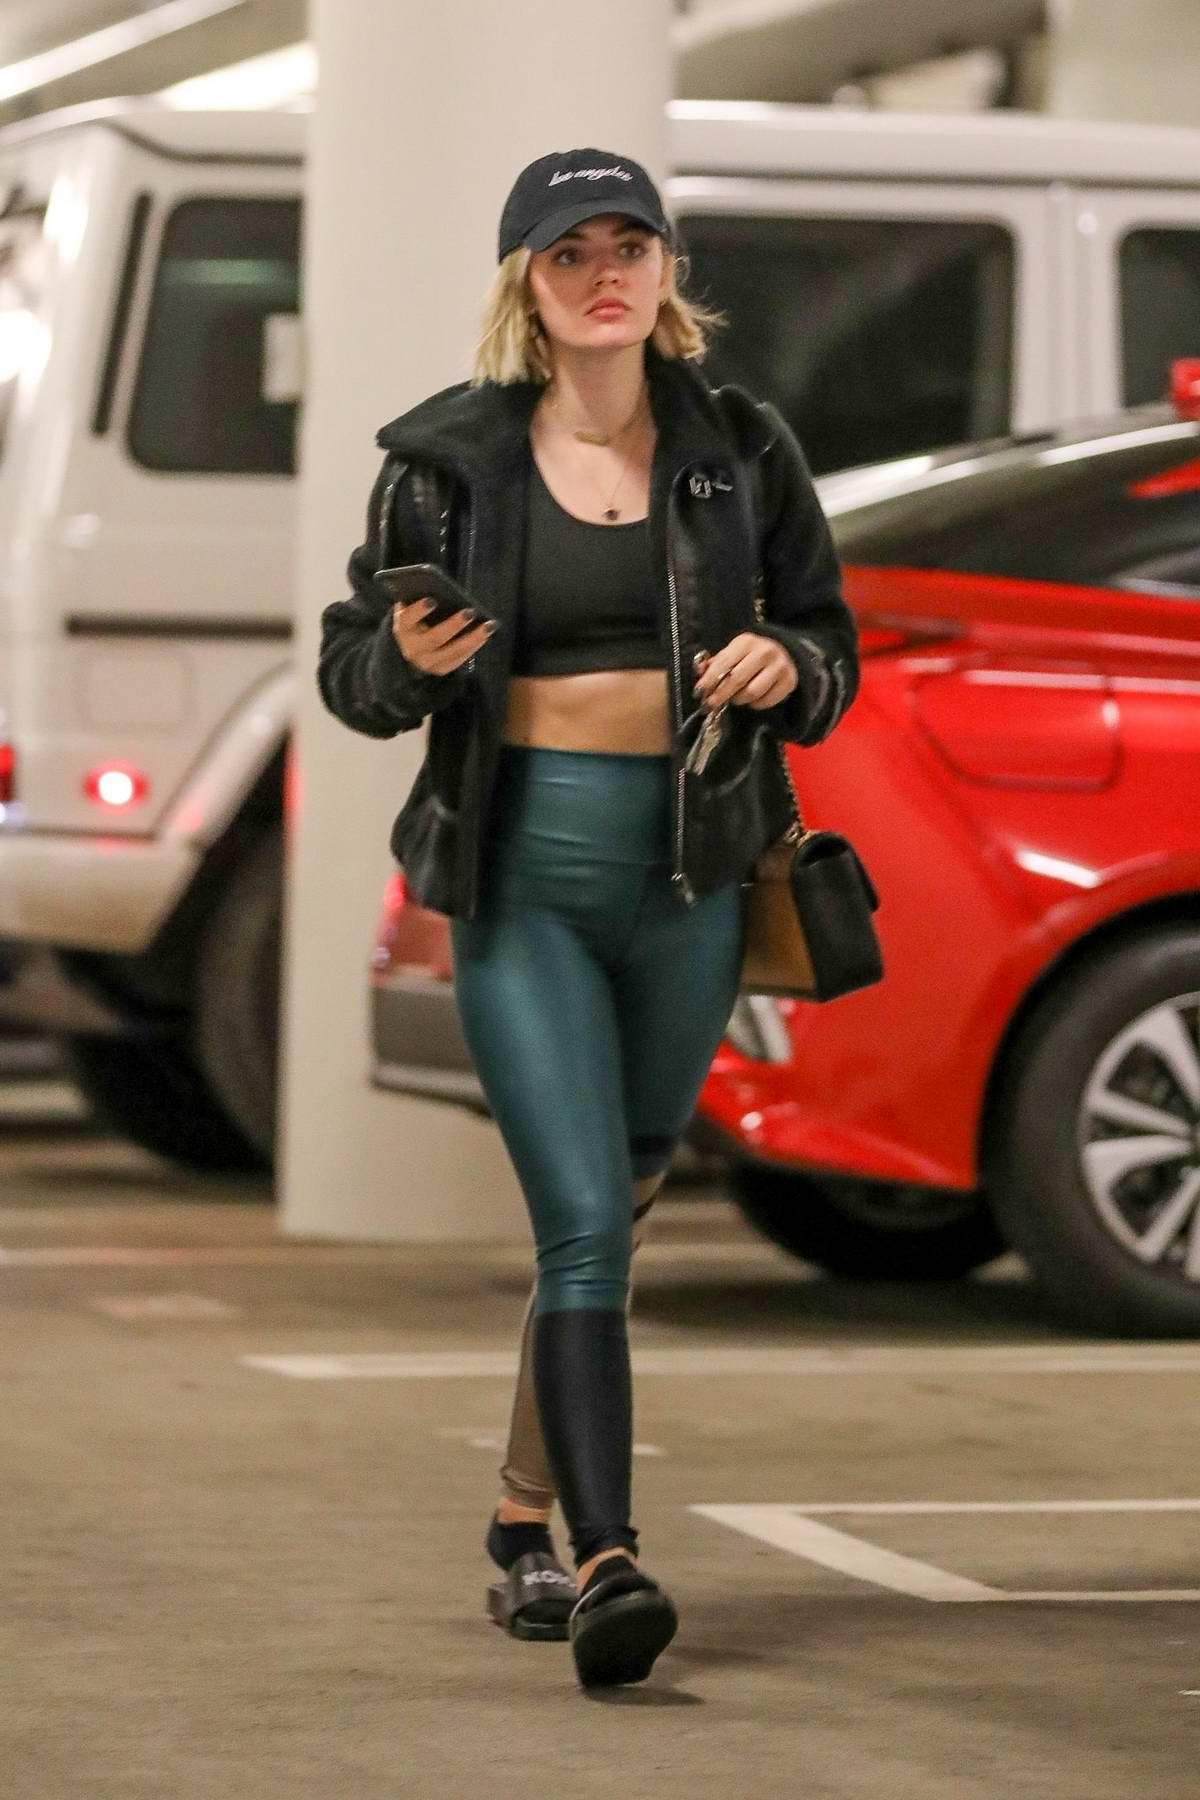 Lucy Hale shows off her toned abs as she leaves the gym after a workout on Thanksgiving Day in Los Angeles